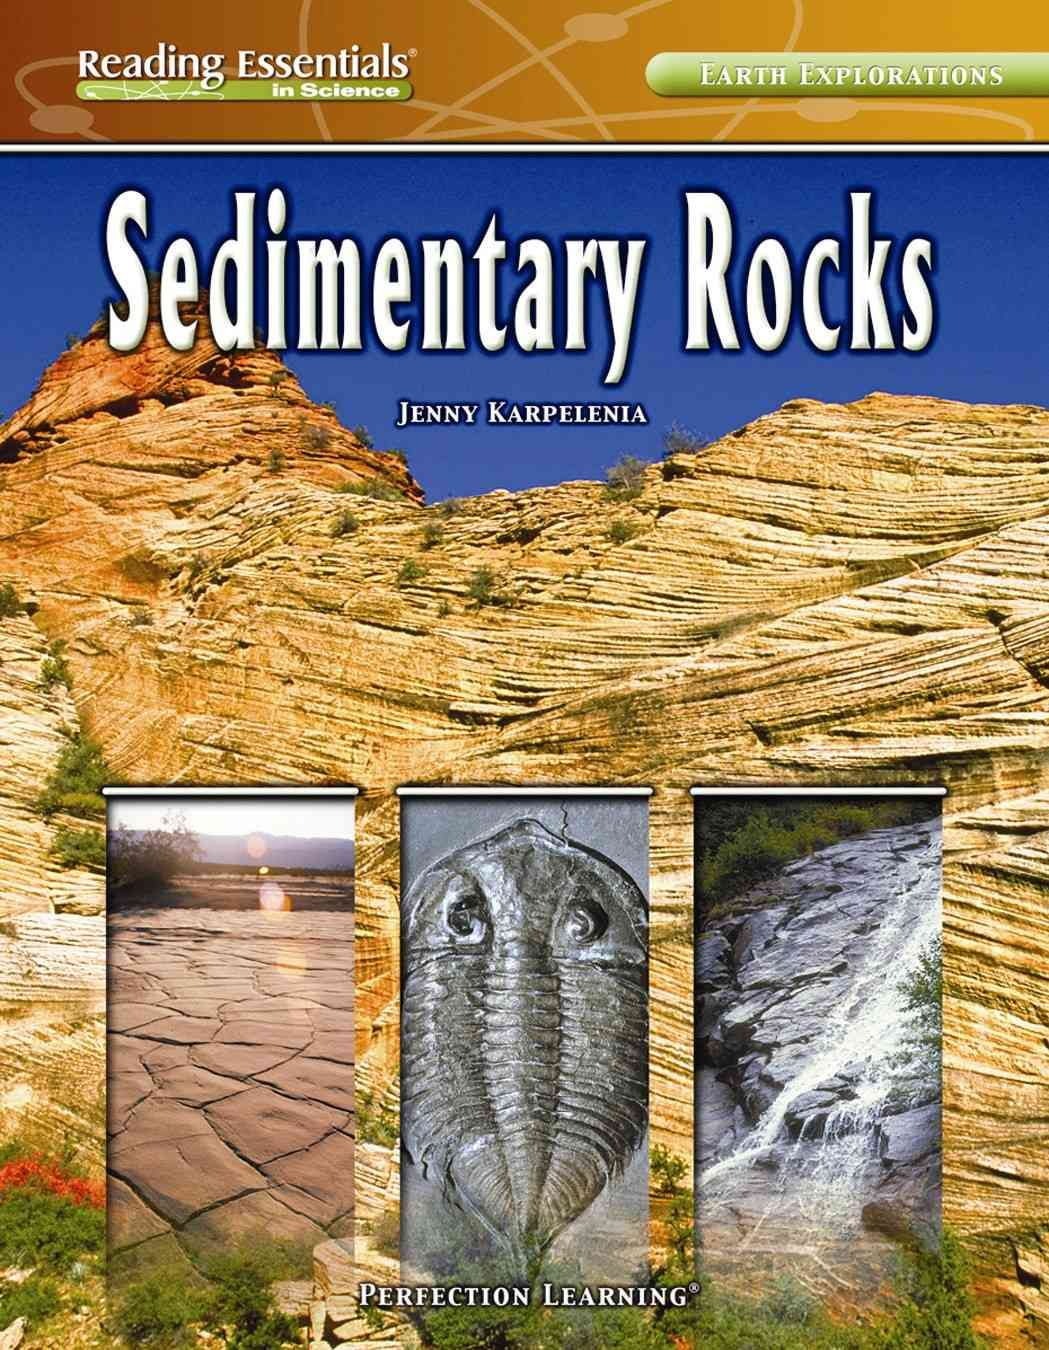 Provides An Overview Of Sedimentary Rocks Discussing